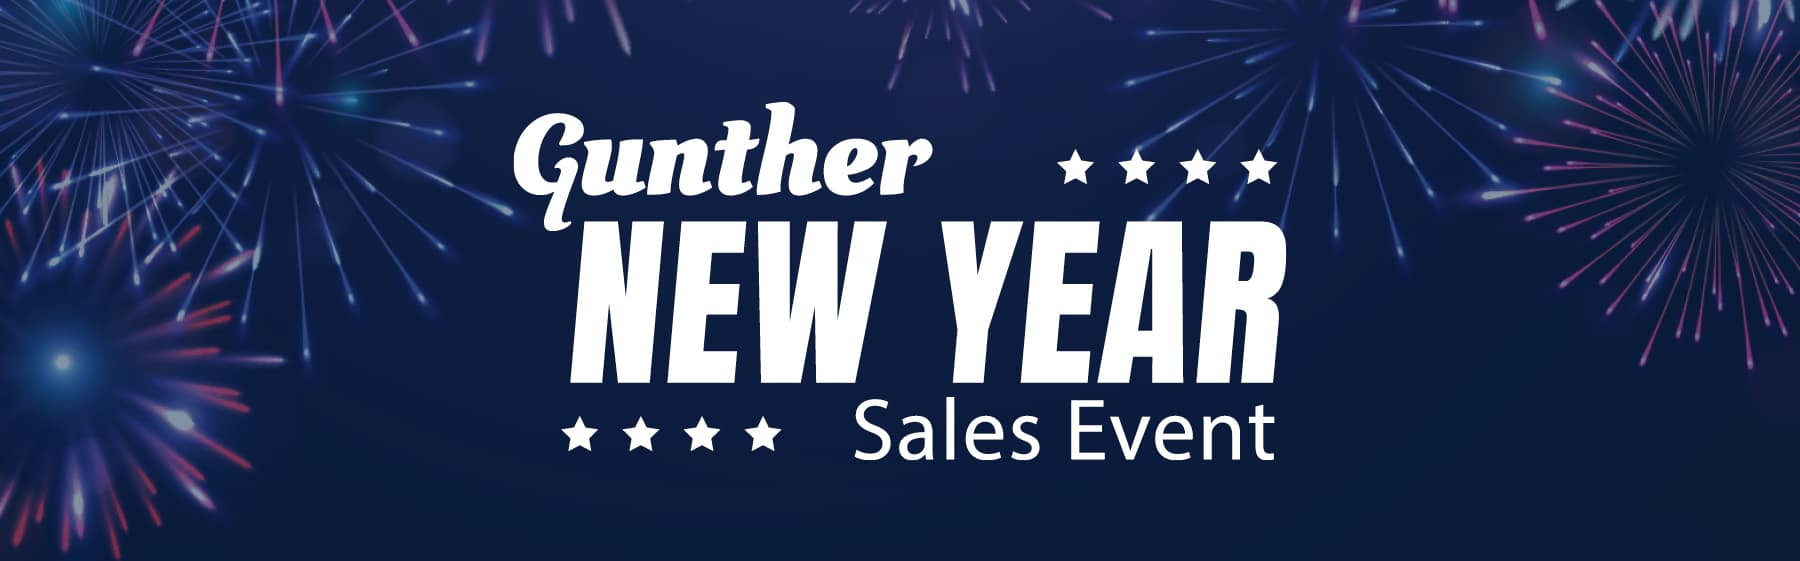 Gunther New Year Sales Event